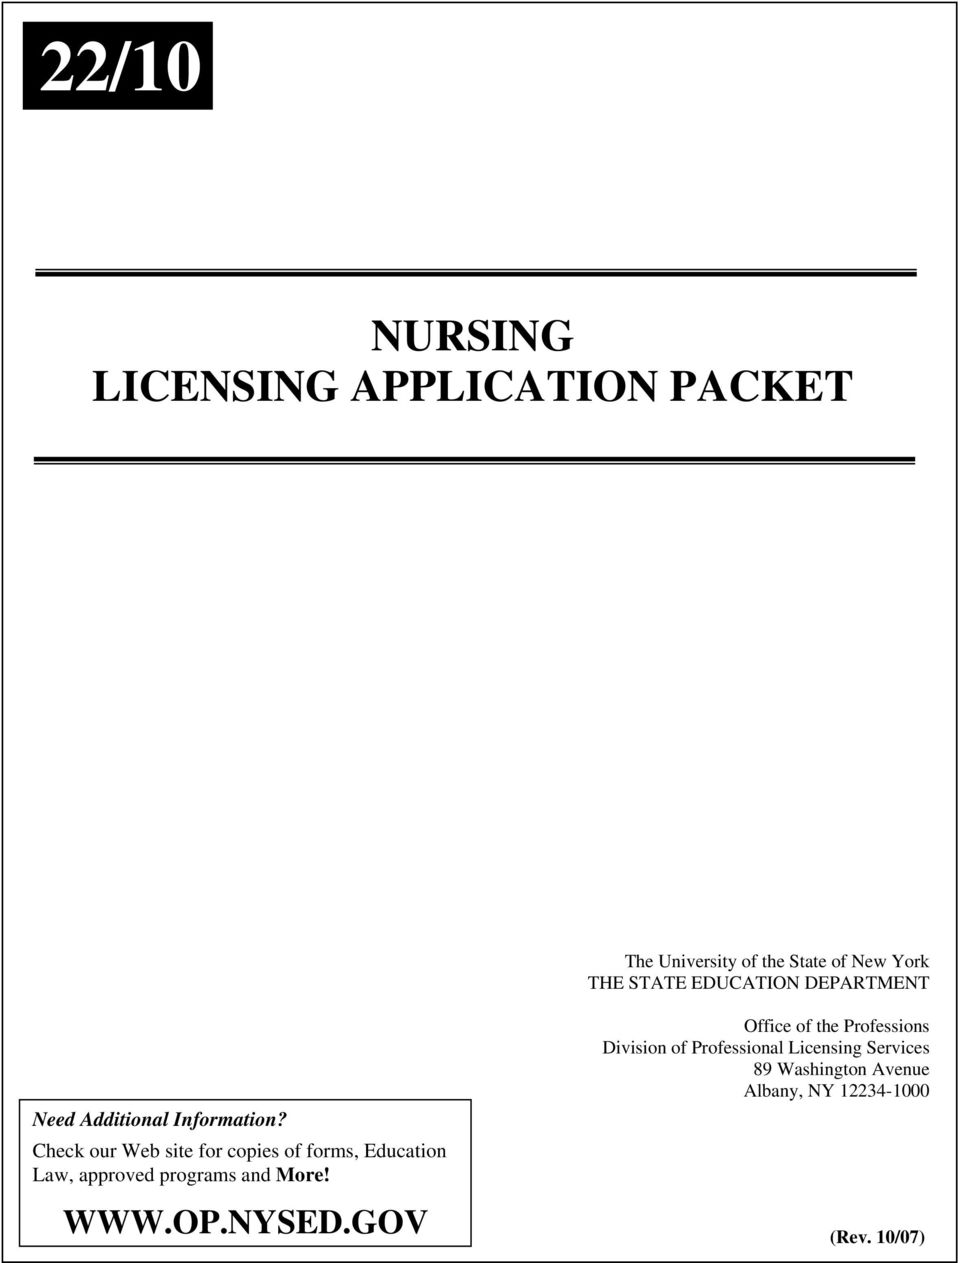 22/10 NURSING LICENSING APPLICATION PACKET - PDF